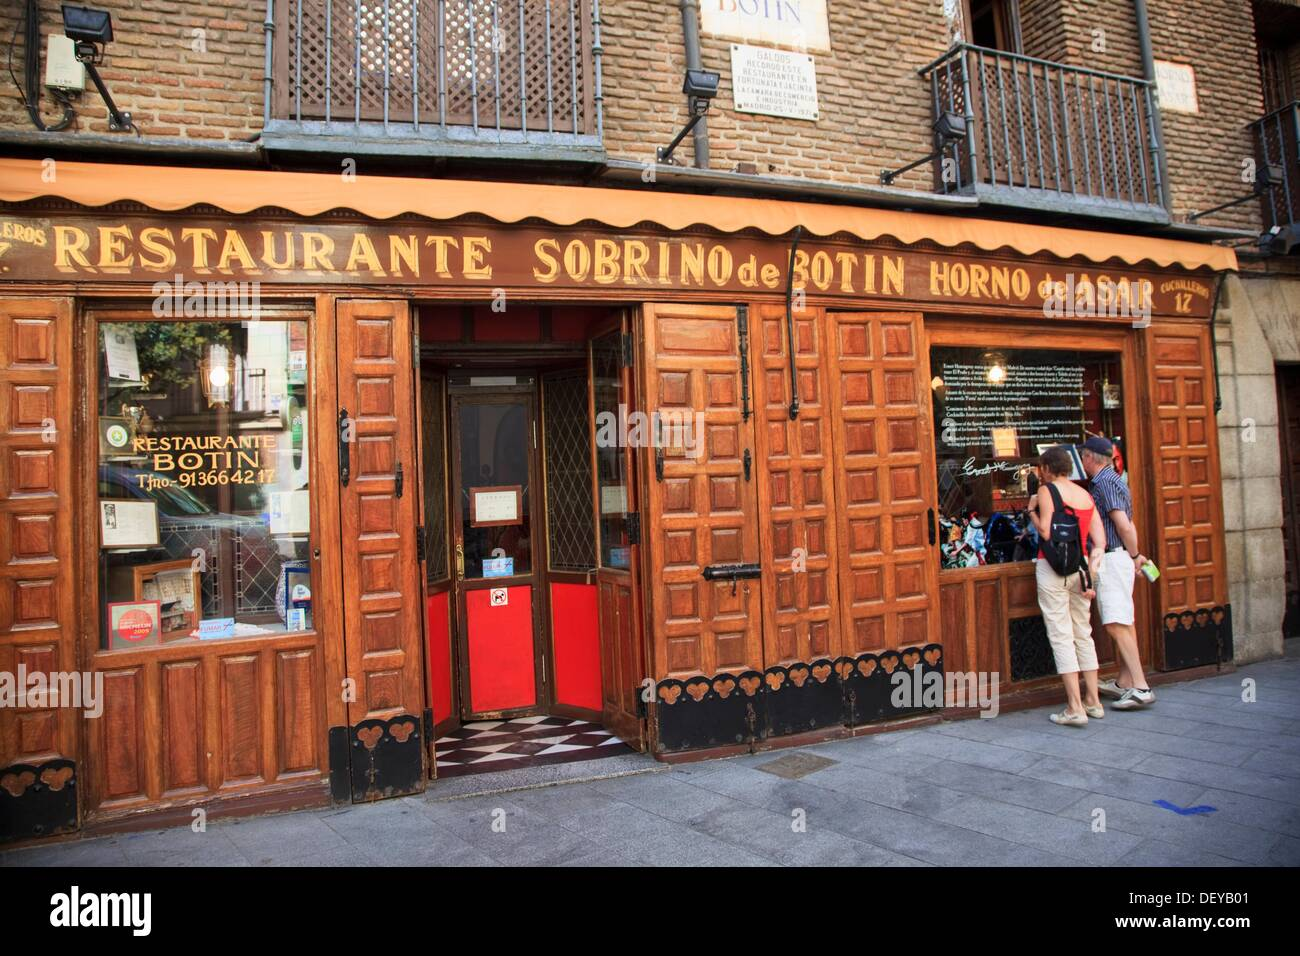 Botin restaurant madrid stock photos botin restaurant for Casa botin madrid